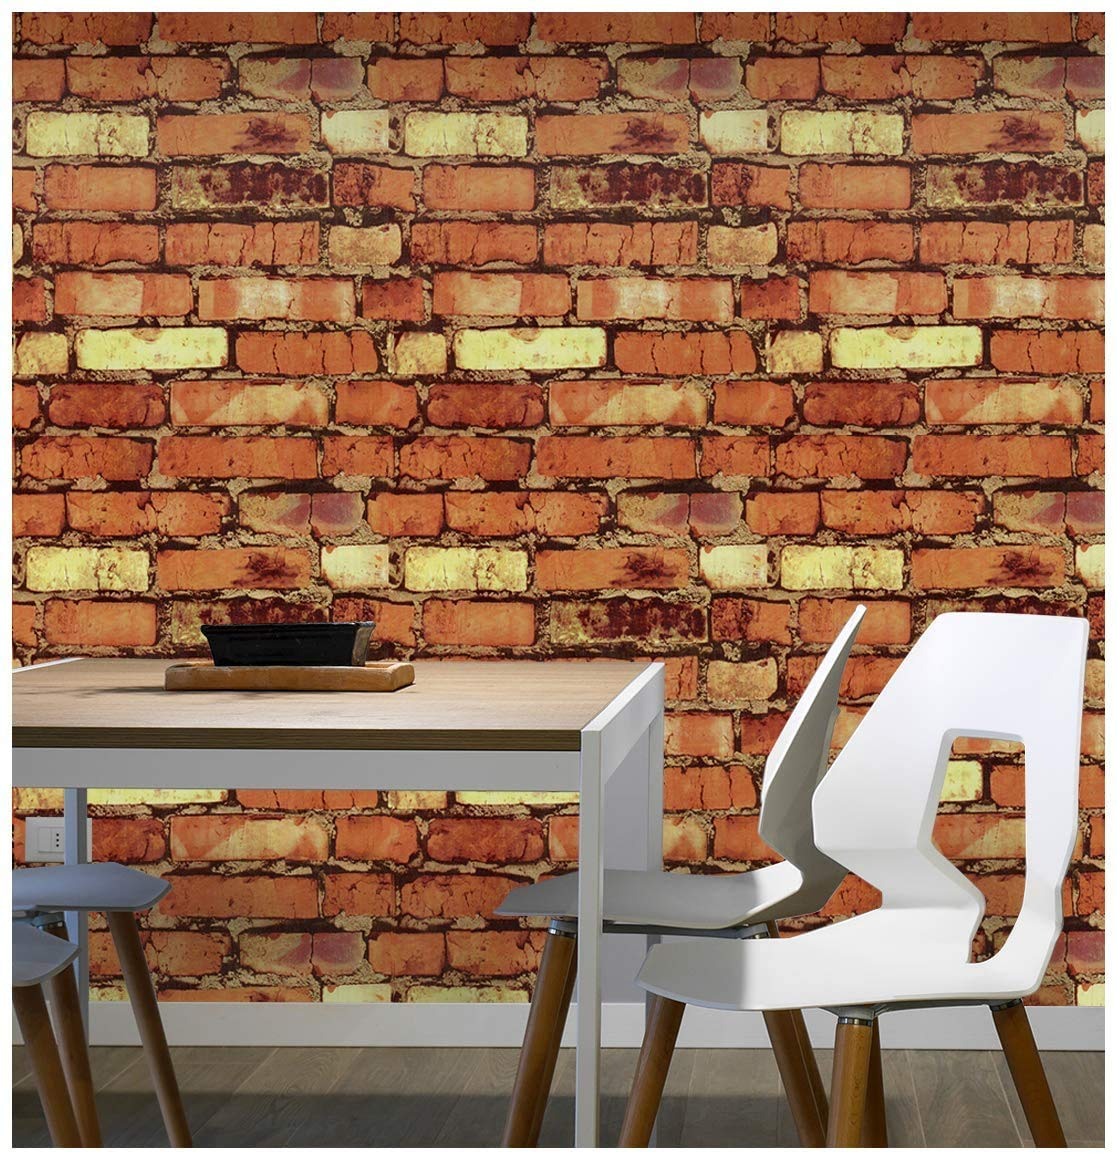 Eurotex Brick Peel and Stick Wallpaper - Self Adhesive- Removable Stone Design Wallcovering- Use as Wall Paper, Contact or Shelf Paper (PVC, Size 1.48ft x 16.4ft, 24 sq ft Roll, Red Brown Color)